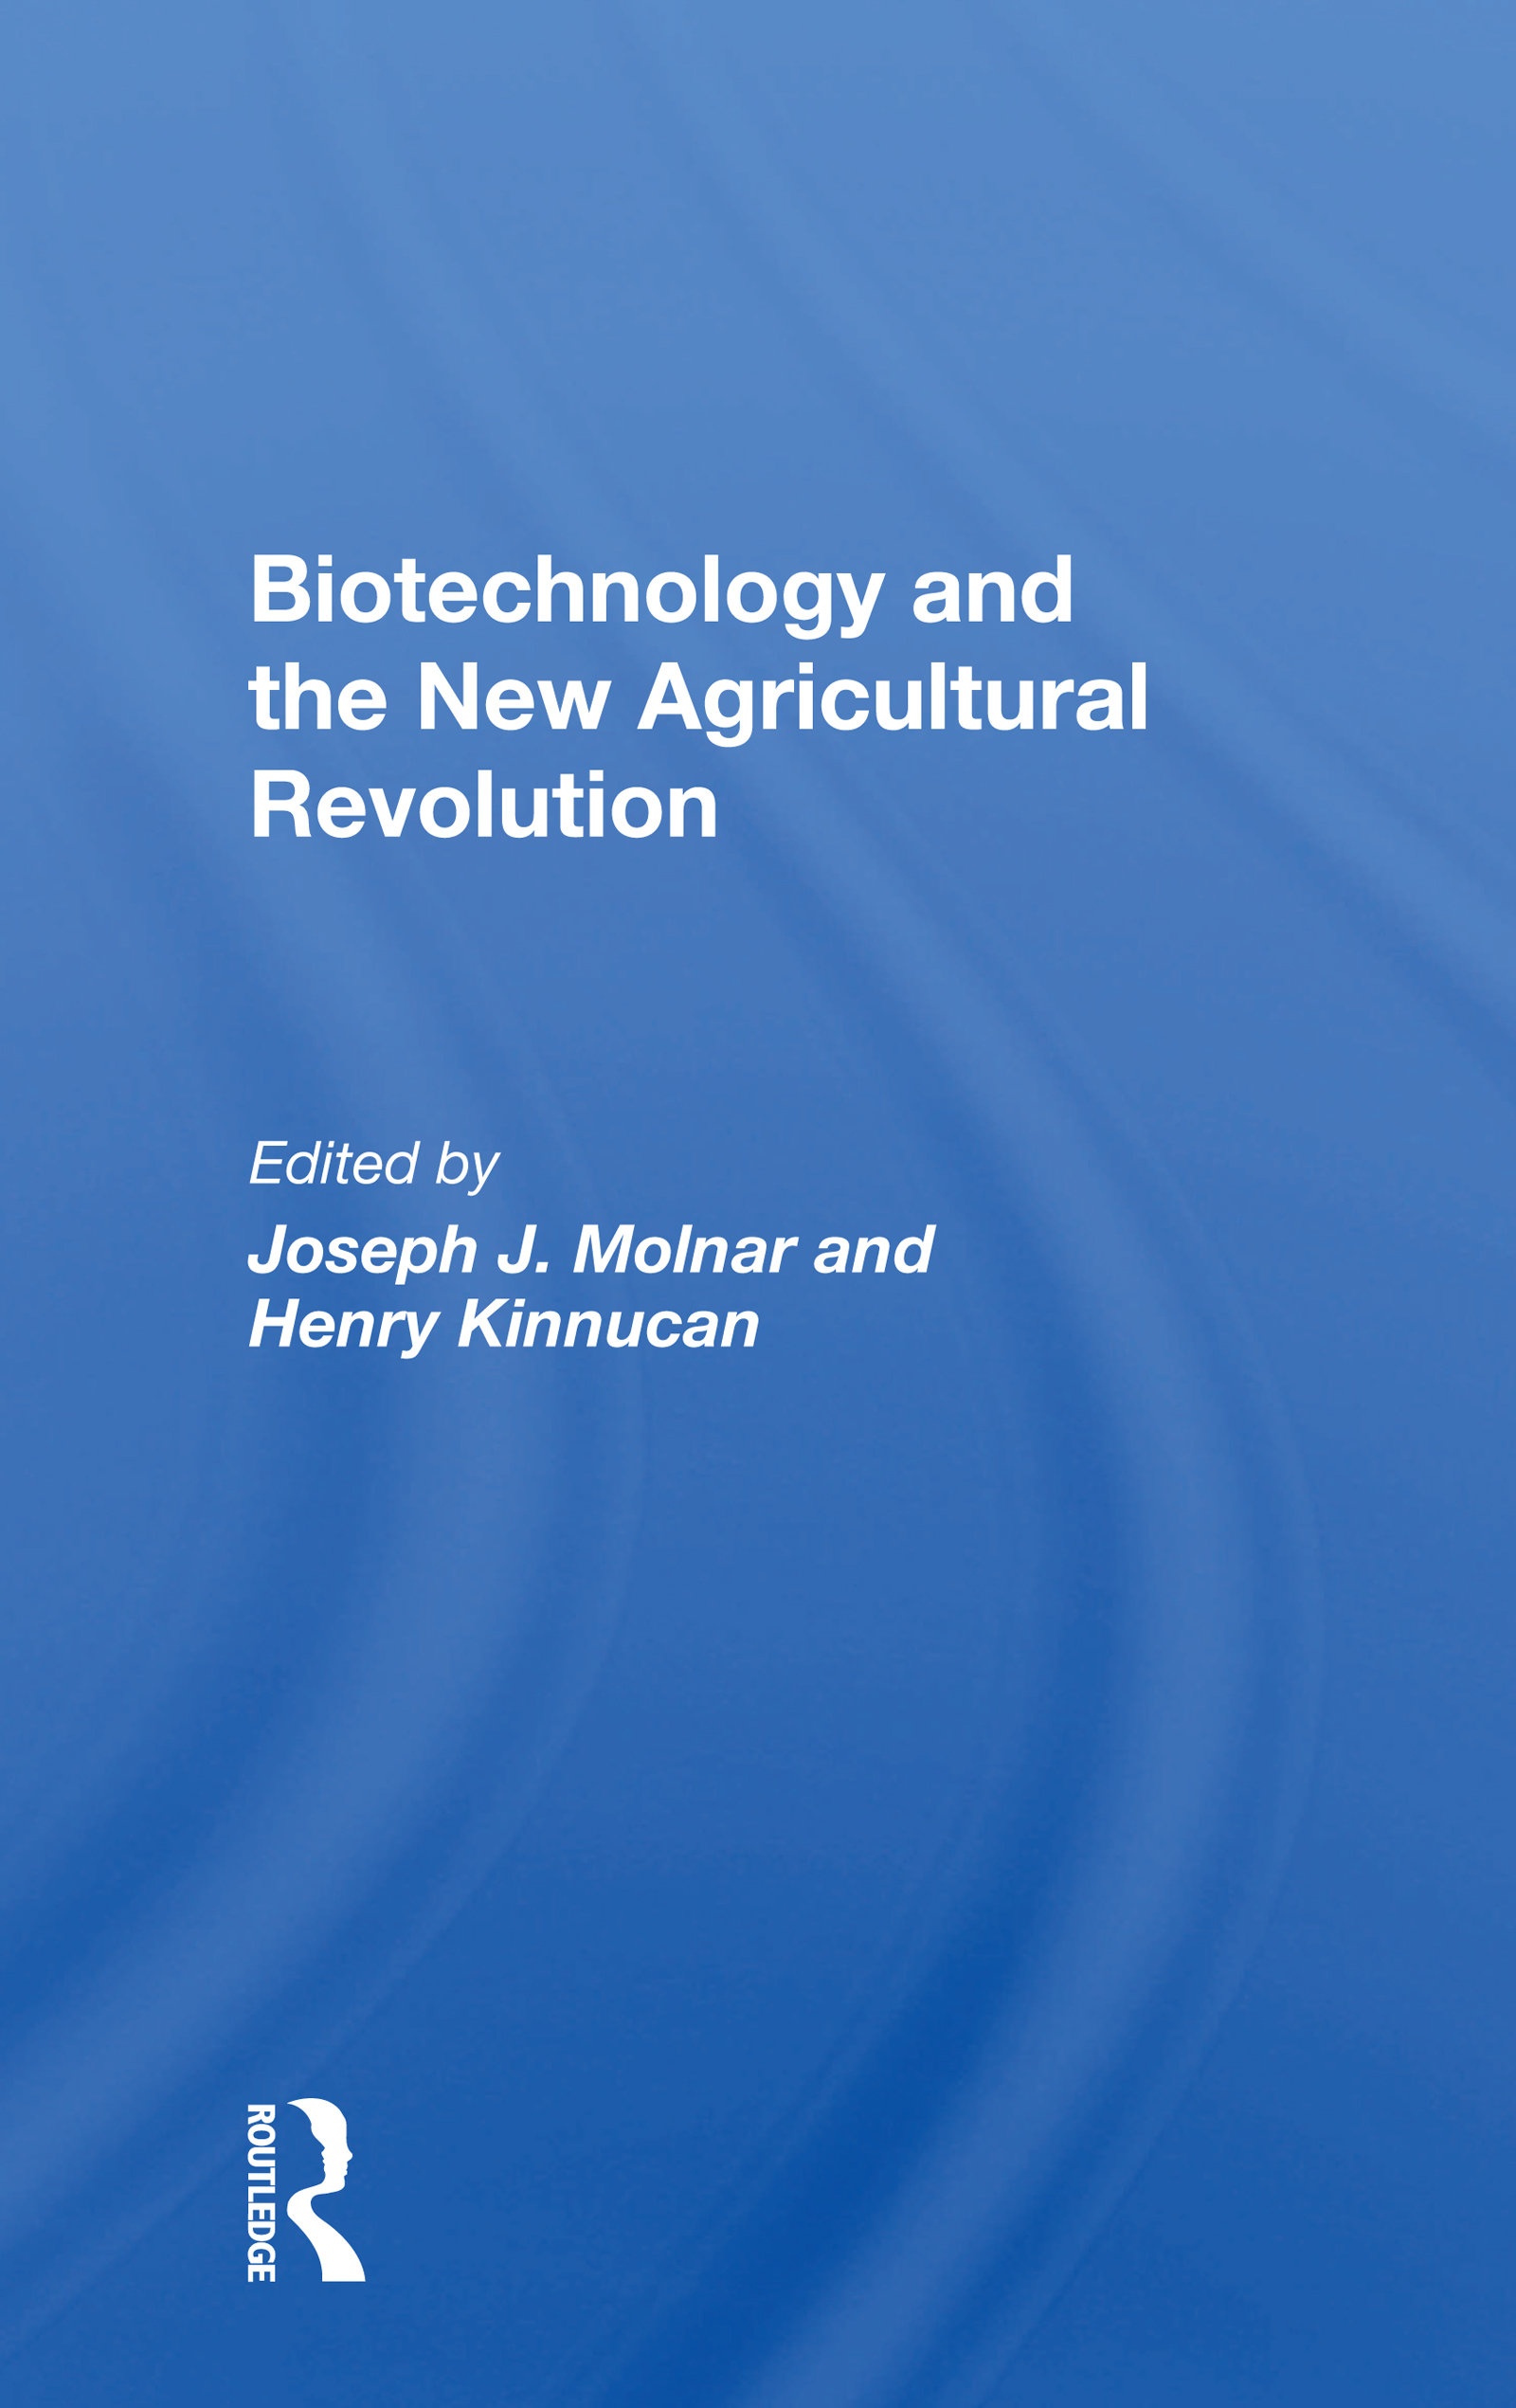 Biotechnology and the New Agricultural Revolution